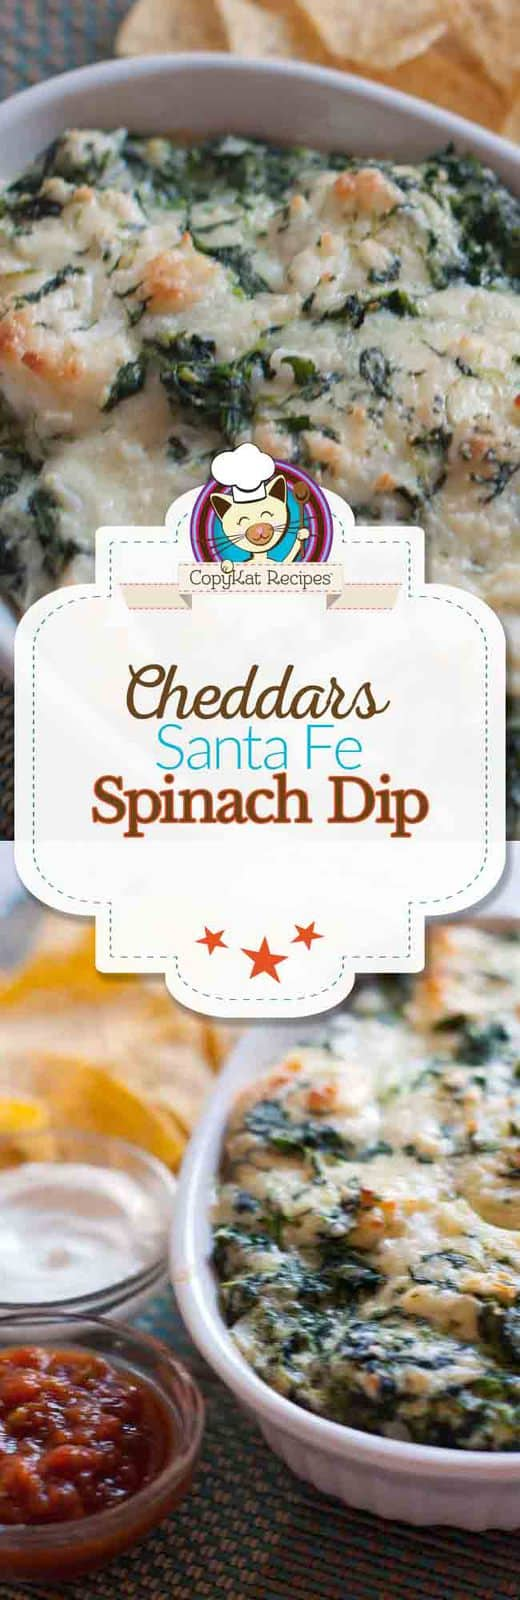 Make your own delicious Cheddars Santa Fe Spinach Dip at home with this easy copycat recipe.